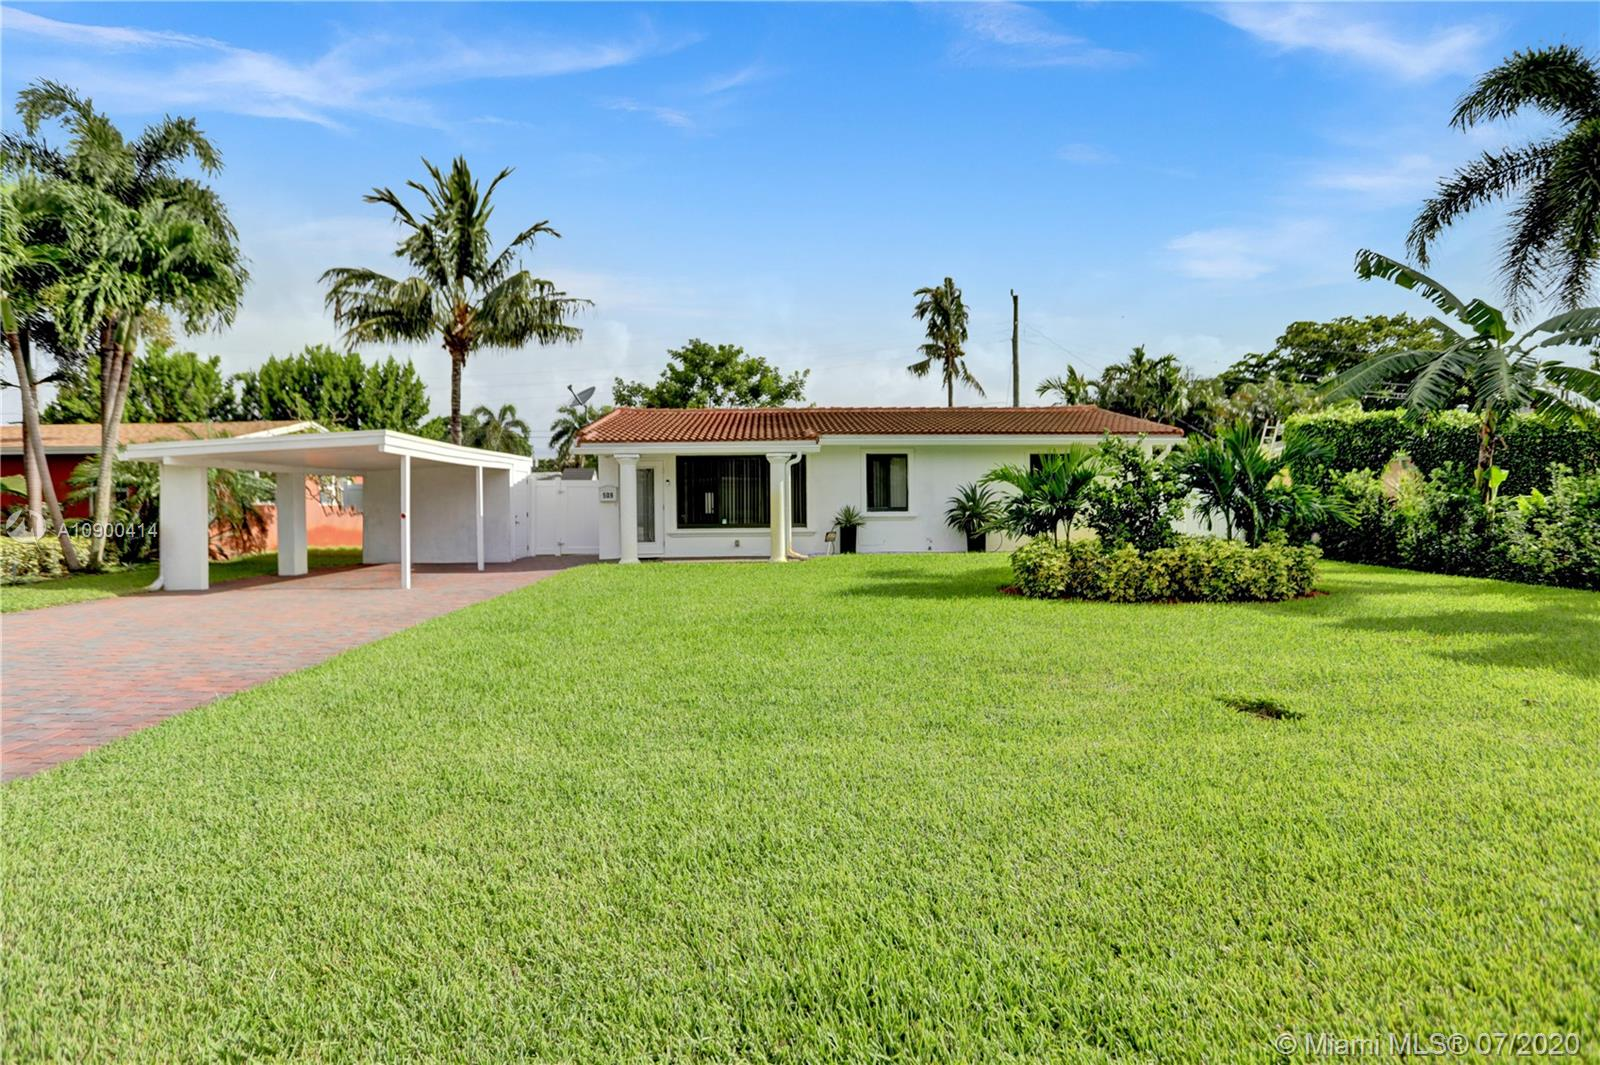 Available turnkey, this fully renovated 3 bedroom/2 bath home is perfect family living or investment. Walk to schools & Wilton Manors Dr., home is centrally located on a large lot w/ lots of room for addition. Features include: salt water hot tub & heated swimming pool, BRAND NEW 3 TON A/C, 2 storage sheds, updated landscaping, ceramic tiles, cook's kitchen, interior washer & dryer, open concept w/ closed in Florida Room, (NOT represented in LA sq ft on listing) ideal for office/play area, impact windows, newer roof, carport, irrigation system, backyard fenced in by PVC, new appliances, licensed for short term rentals, new A/C, new tankless water heater. Wilton Manors is one of the most desirous neighborhoods in E. Lauderdale. Seller says sell! Two couches in photos do not convey.